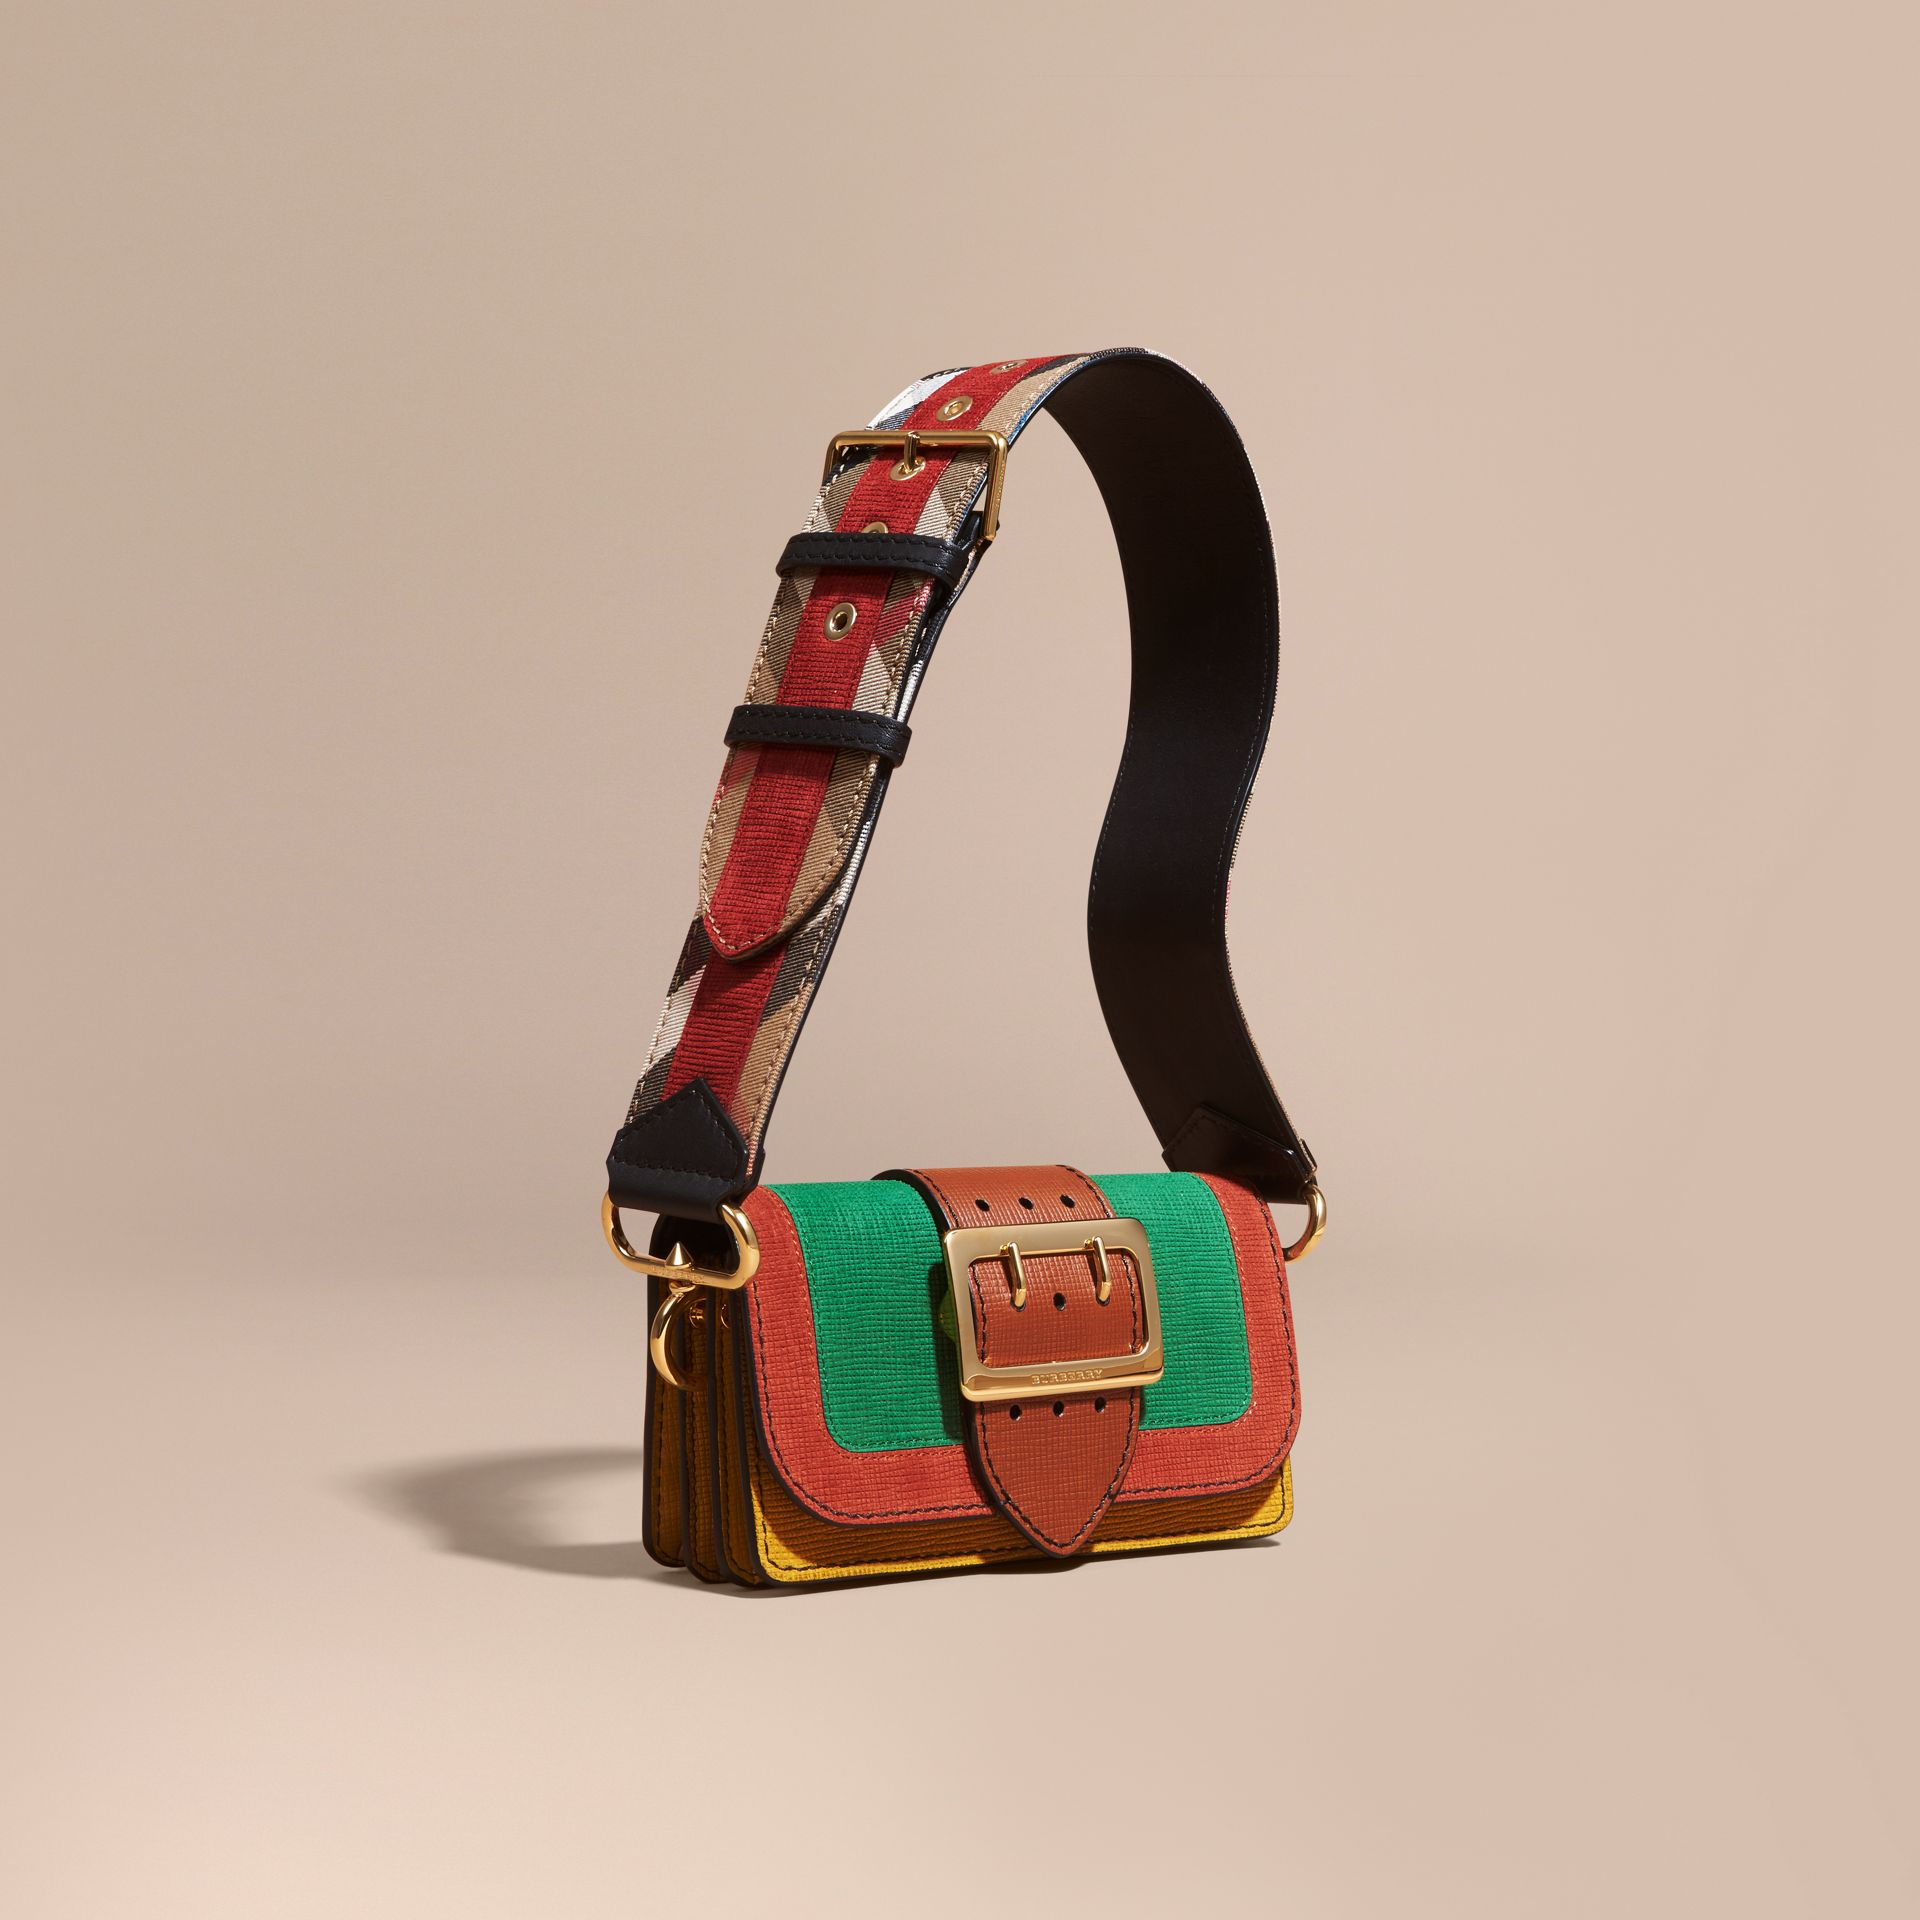 The Small Buckle Bag in Textured Leather in Bright Green - gallery image 1